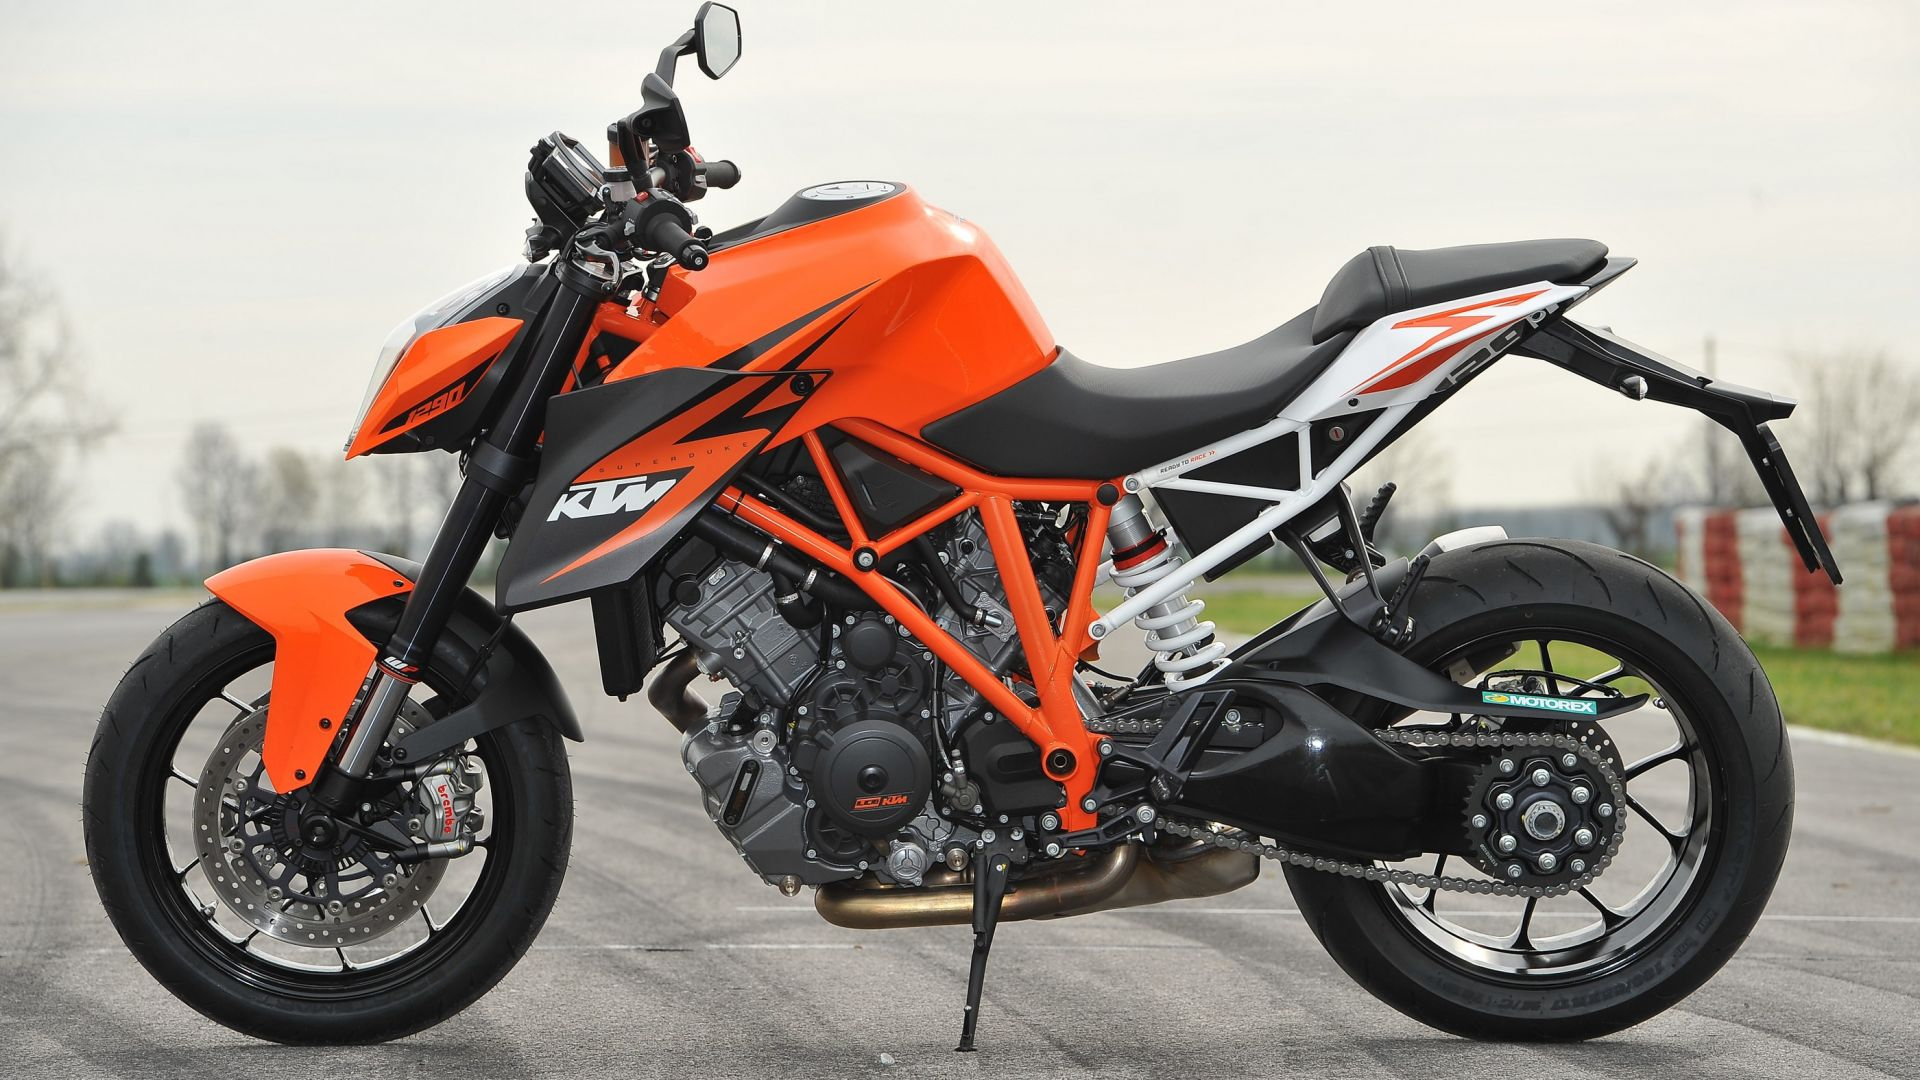 Ktm Duke 1290 >> In pista con: KTM 1290 Super Duke R - MotorBox